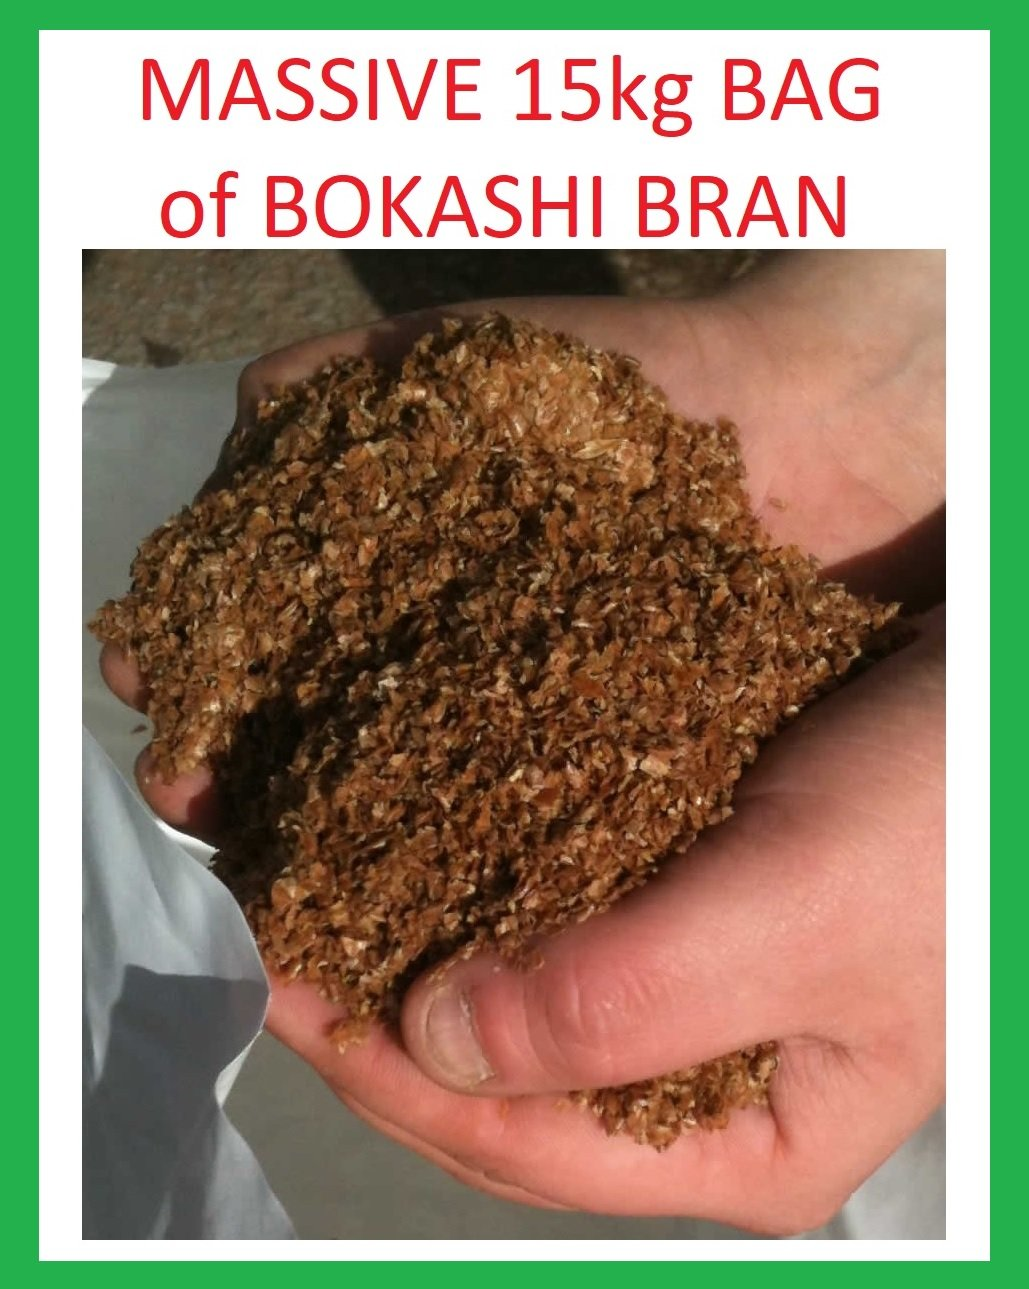 EM Massive 15kg Bag of Bokashi Bran, Extra Value Natural Food Compost Activator, Microbes Enriched